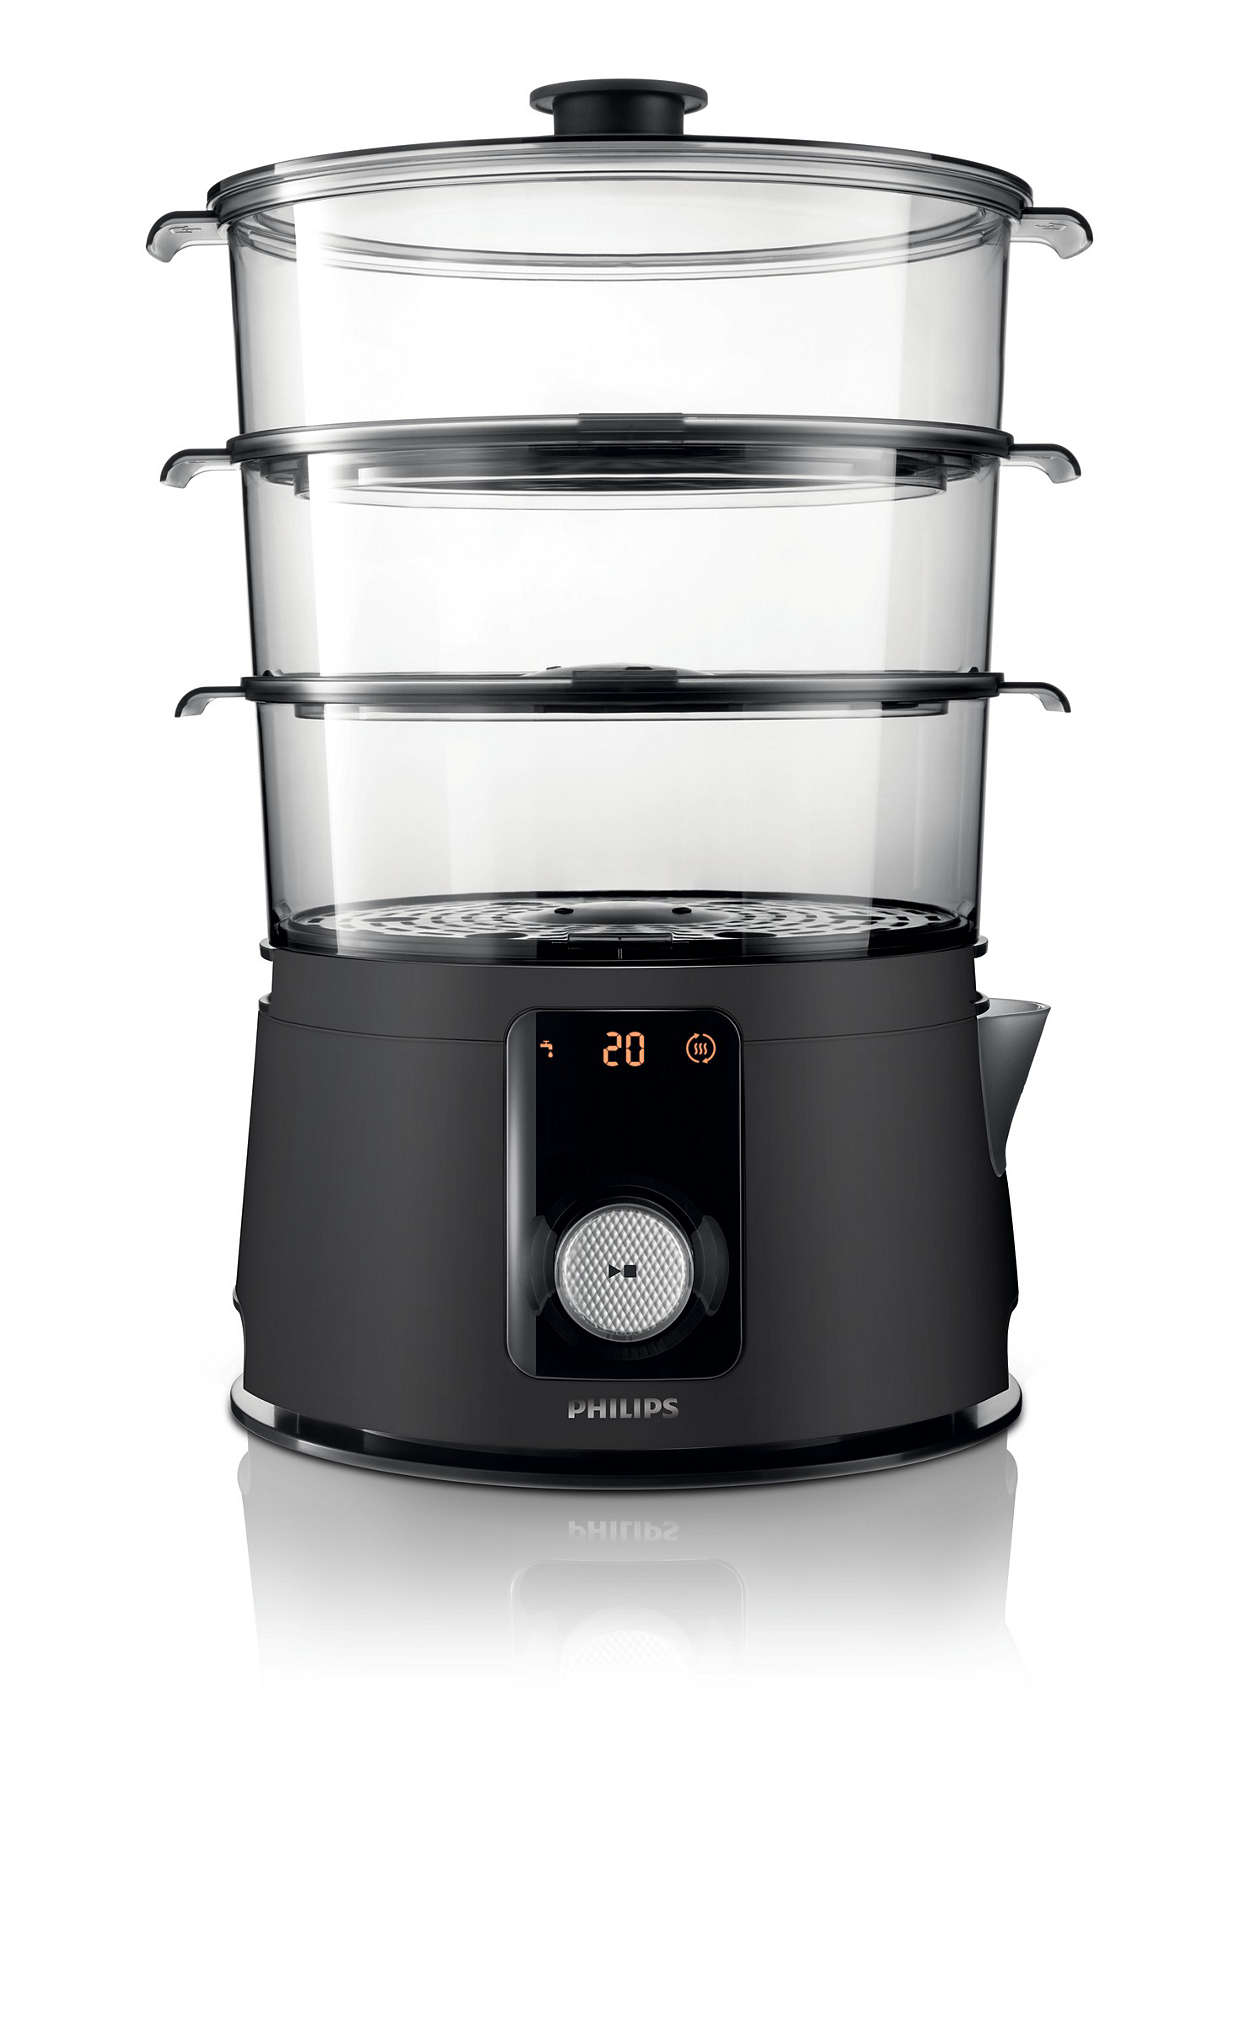 Avance collection steamer hd9150 91 philips - Vaporera profesional ...